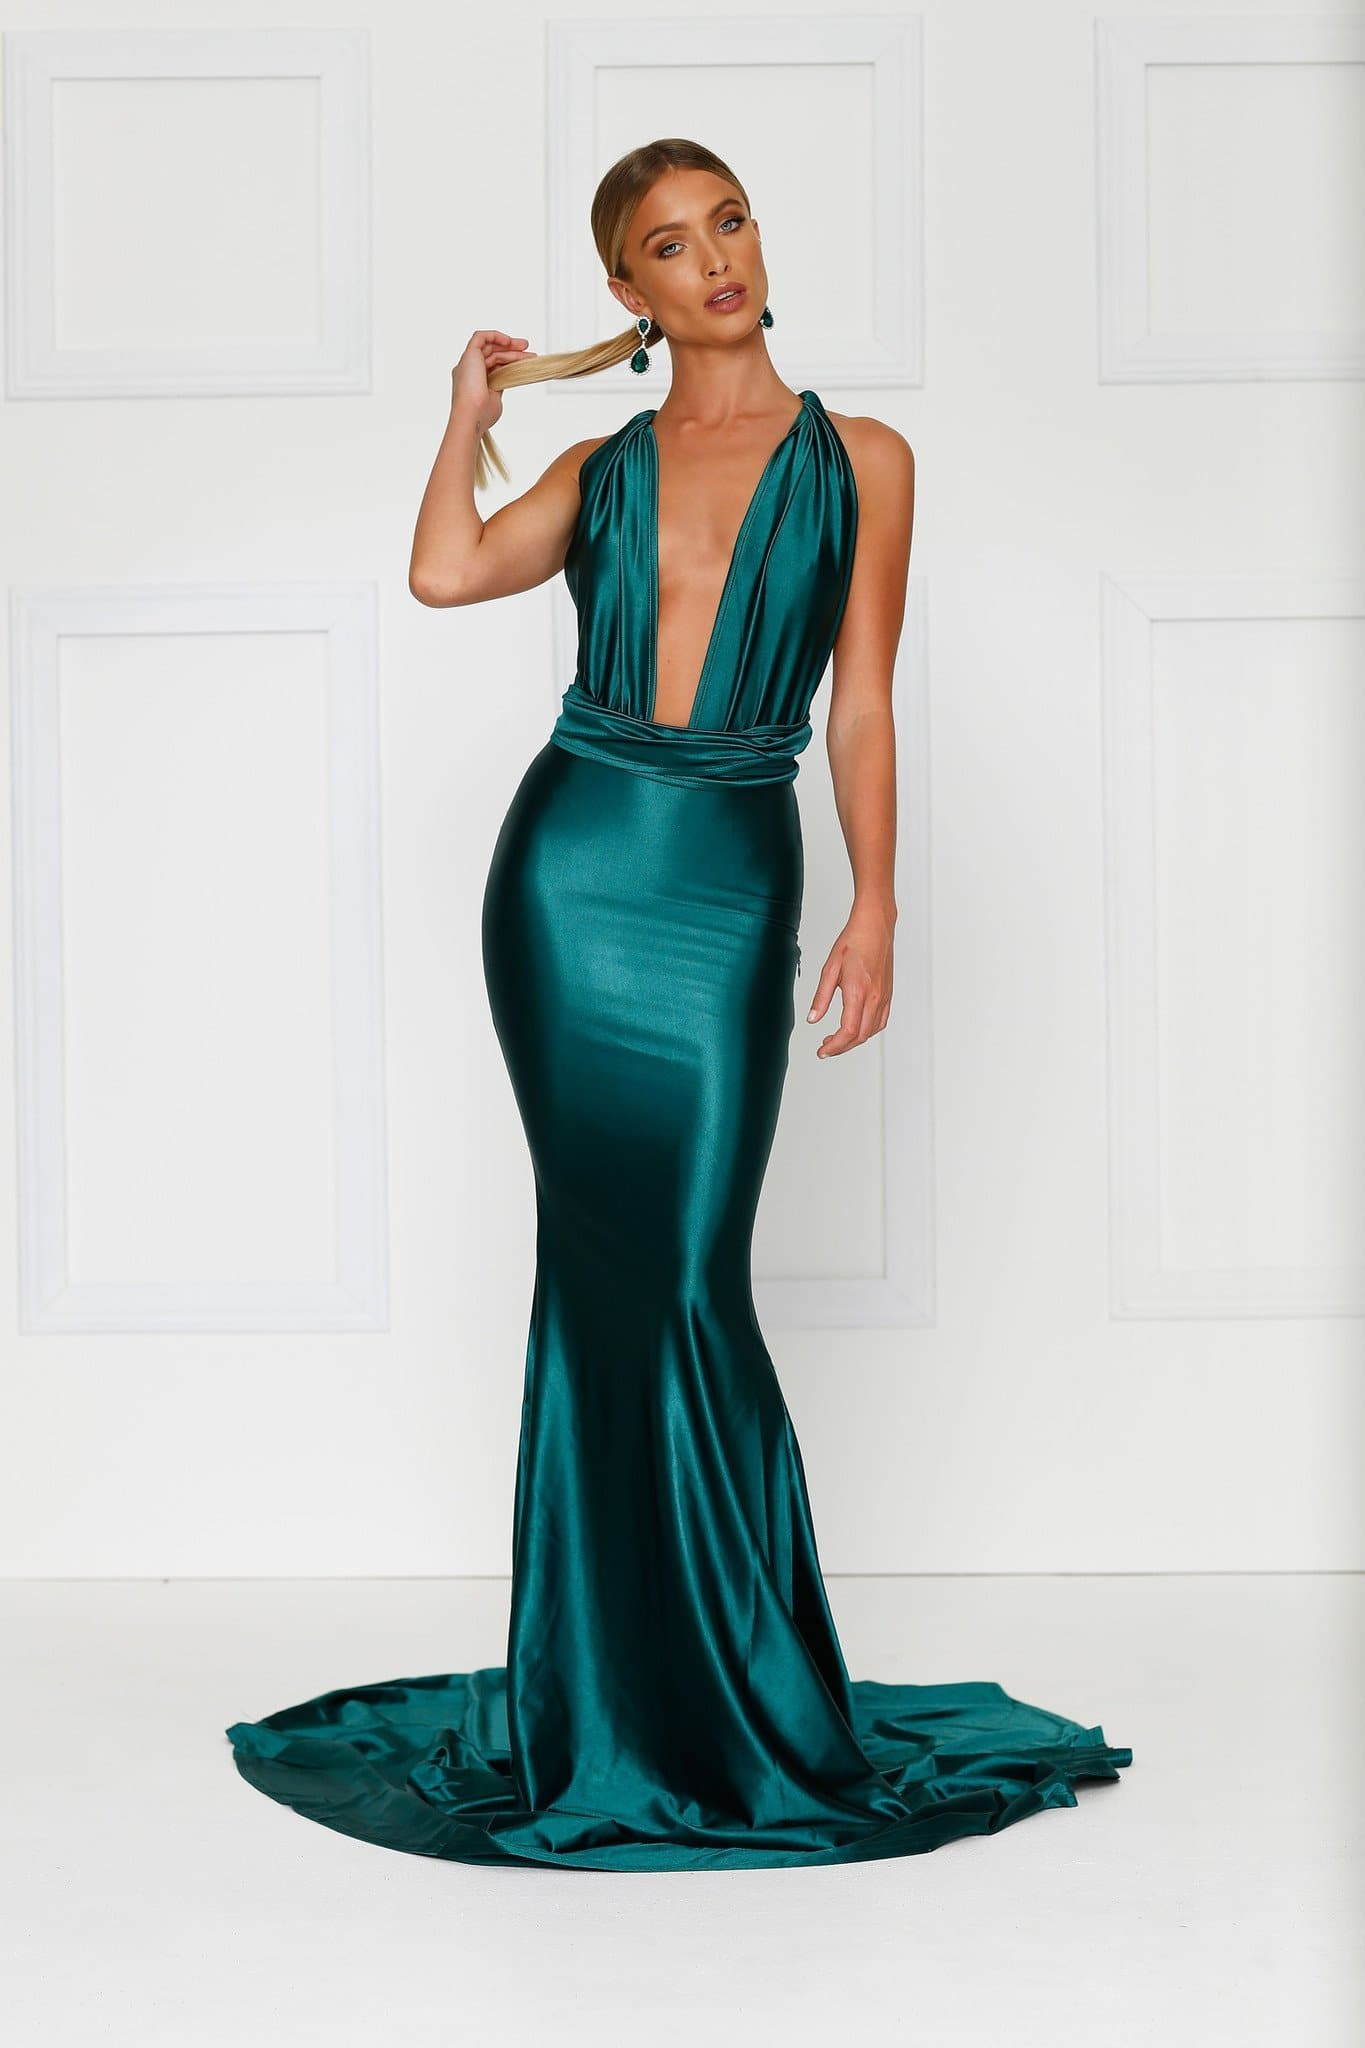 cf30ee8431b5 ... Lena - Emerald Satin Multiway Gown with Plunging Neckline   Low Back ...